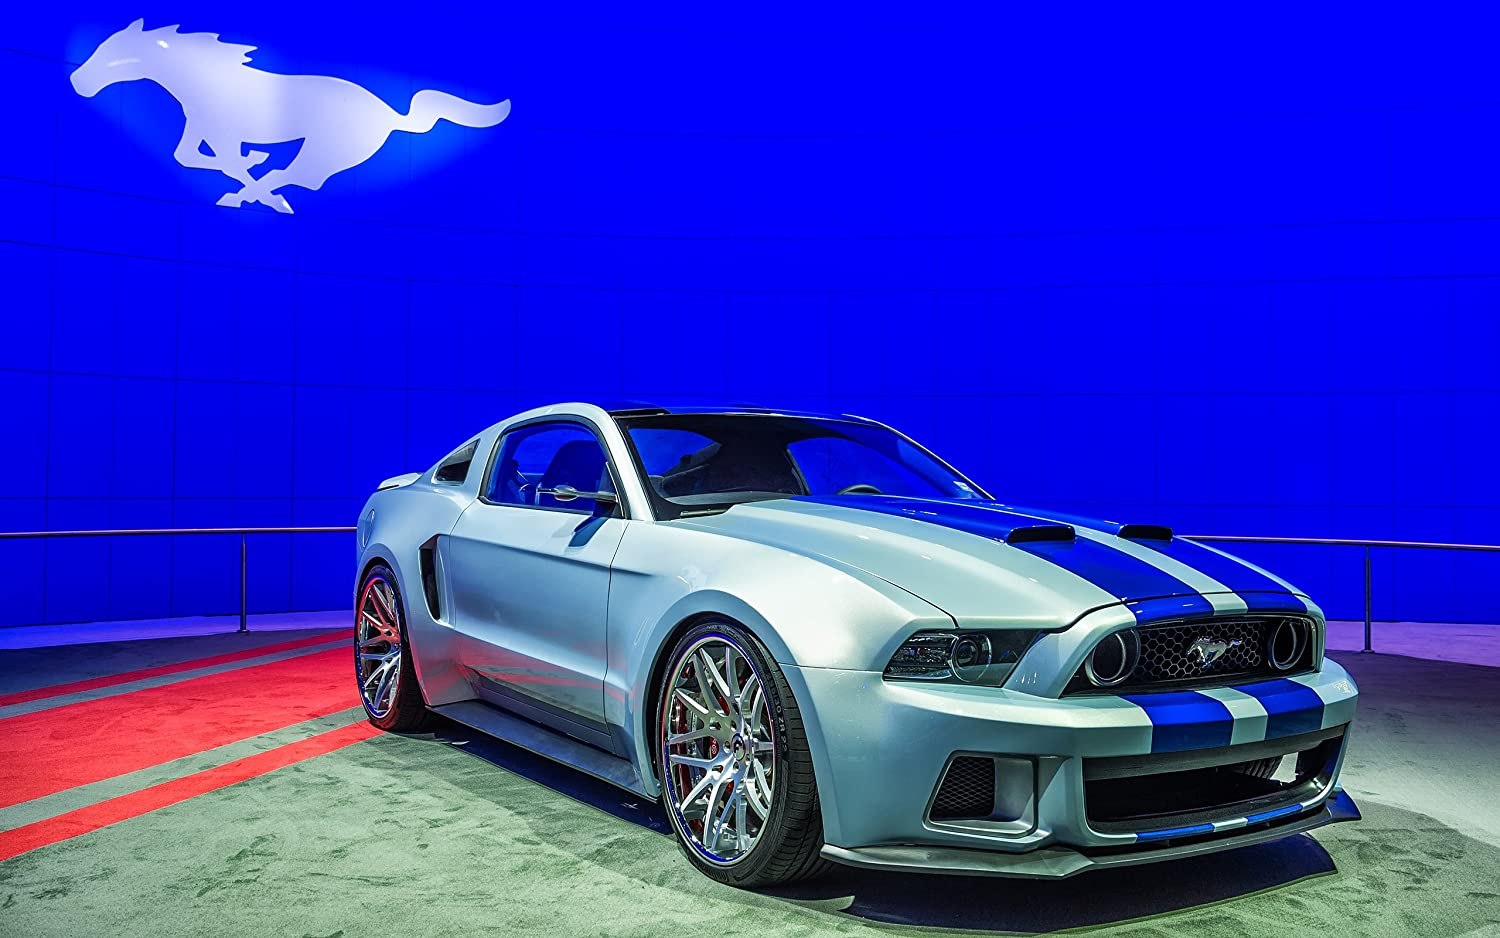 Athah Designs Wall Poster Cars Film Ford Shelby Mustang Gt Need